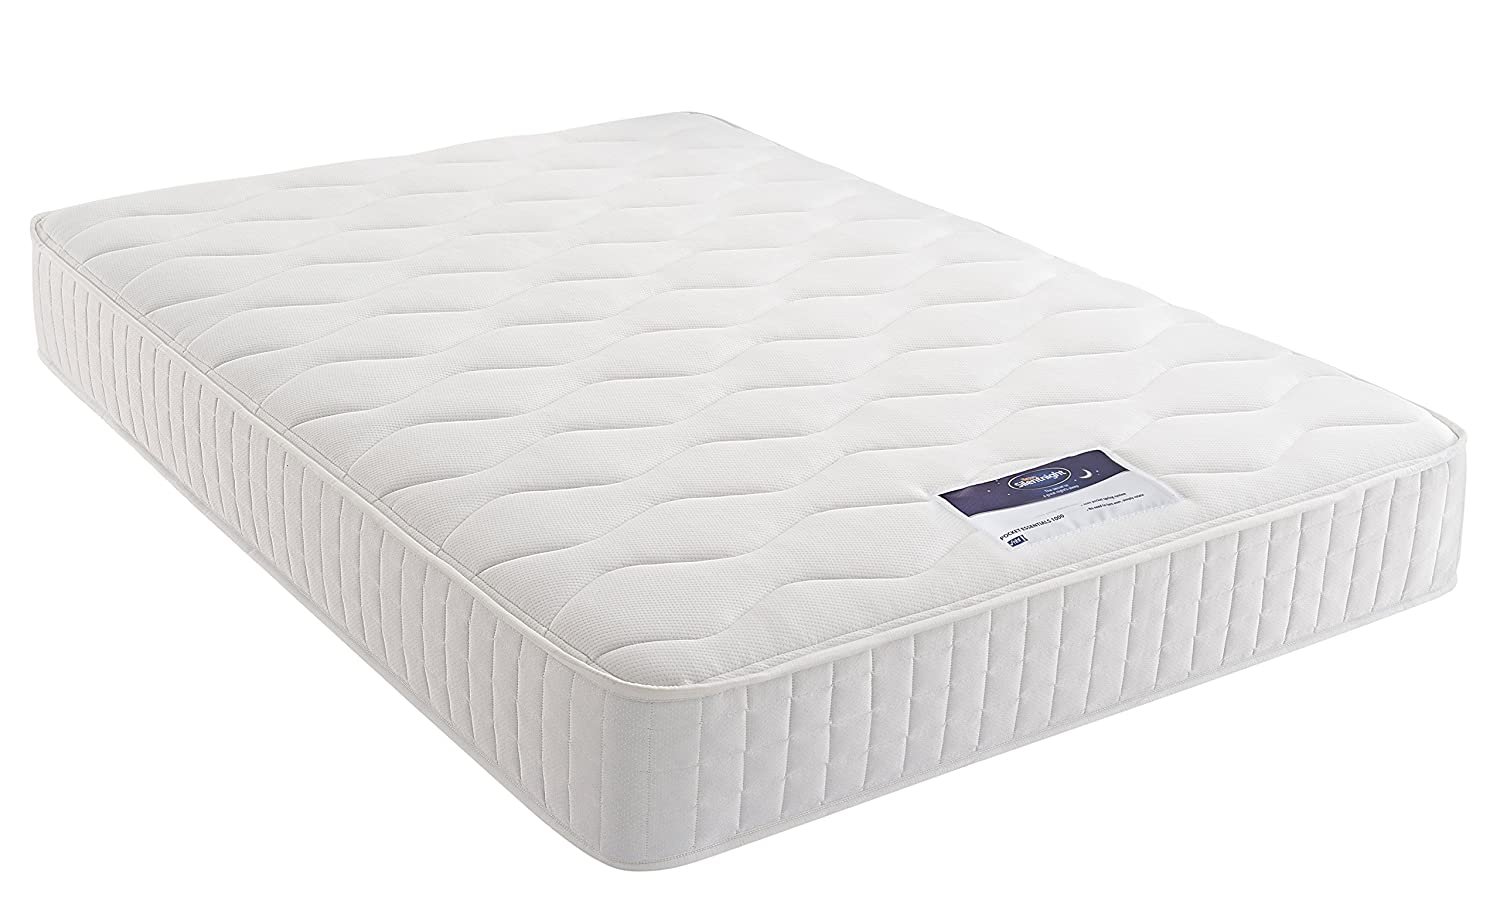 Silentnight Pocket Essentials 1000 Pocket Spring Mattress